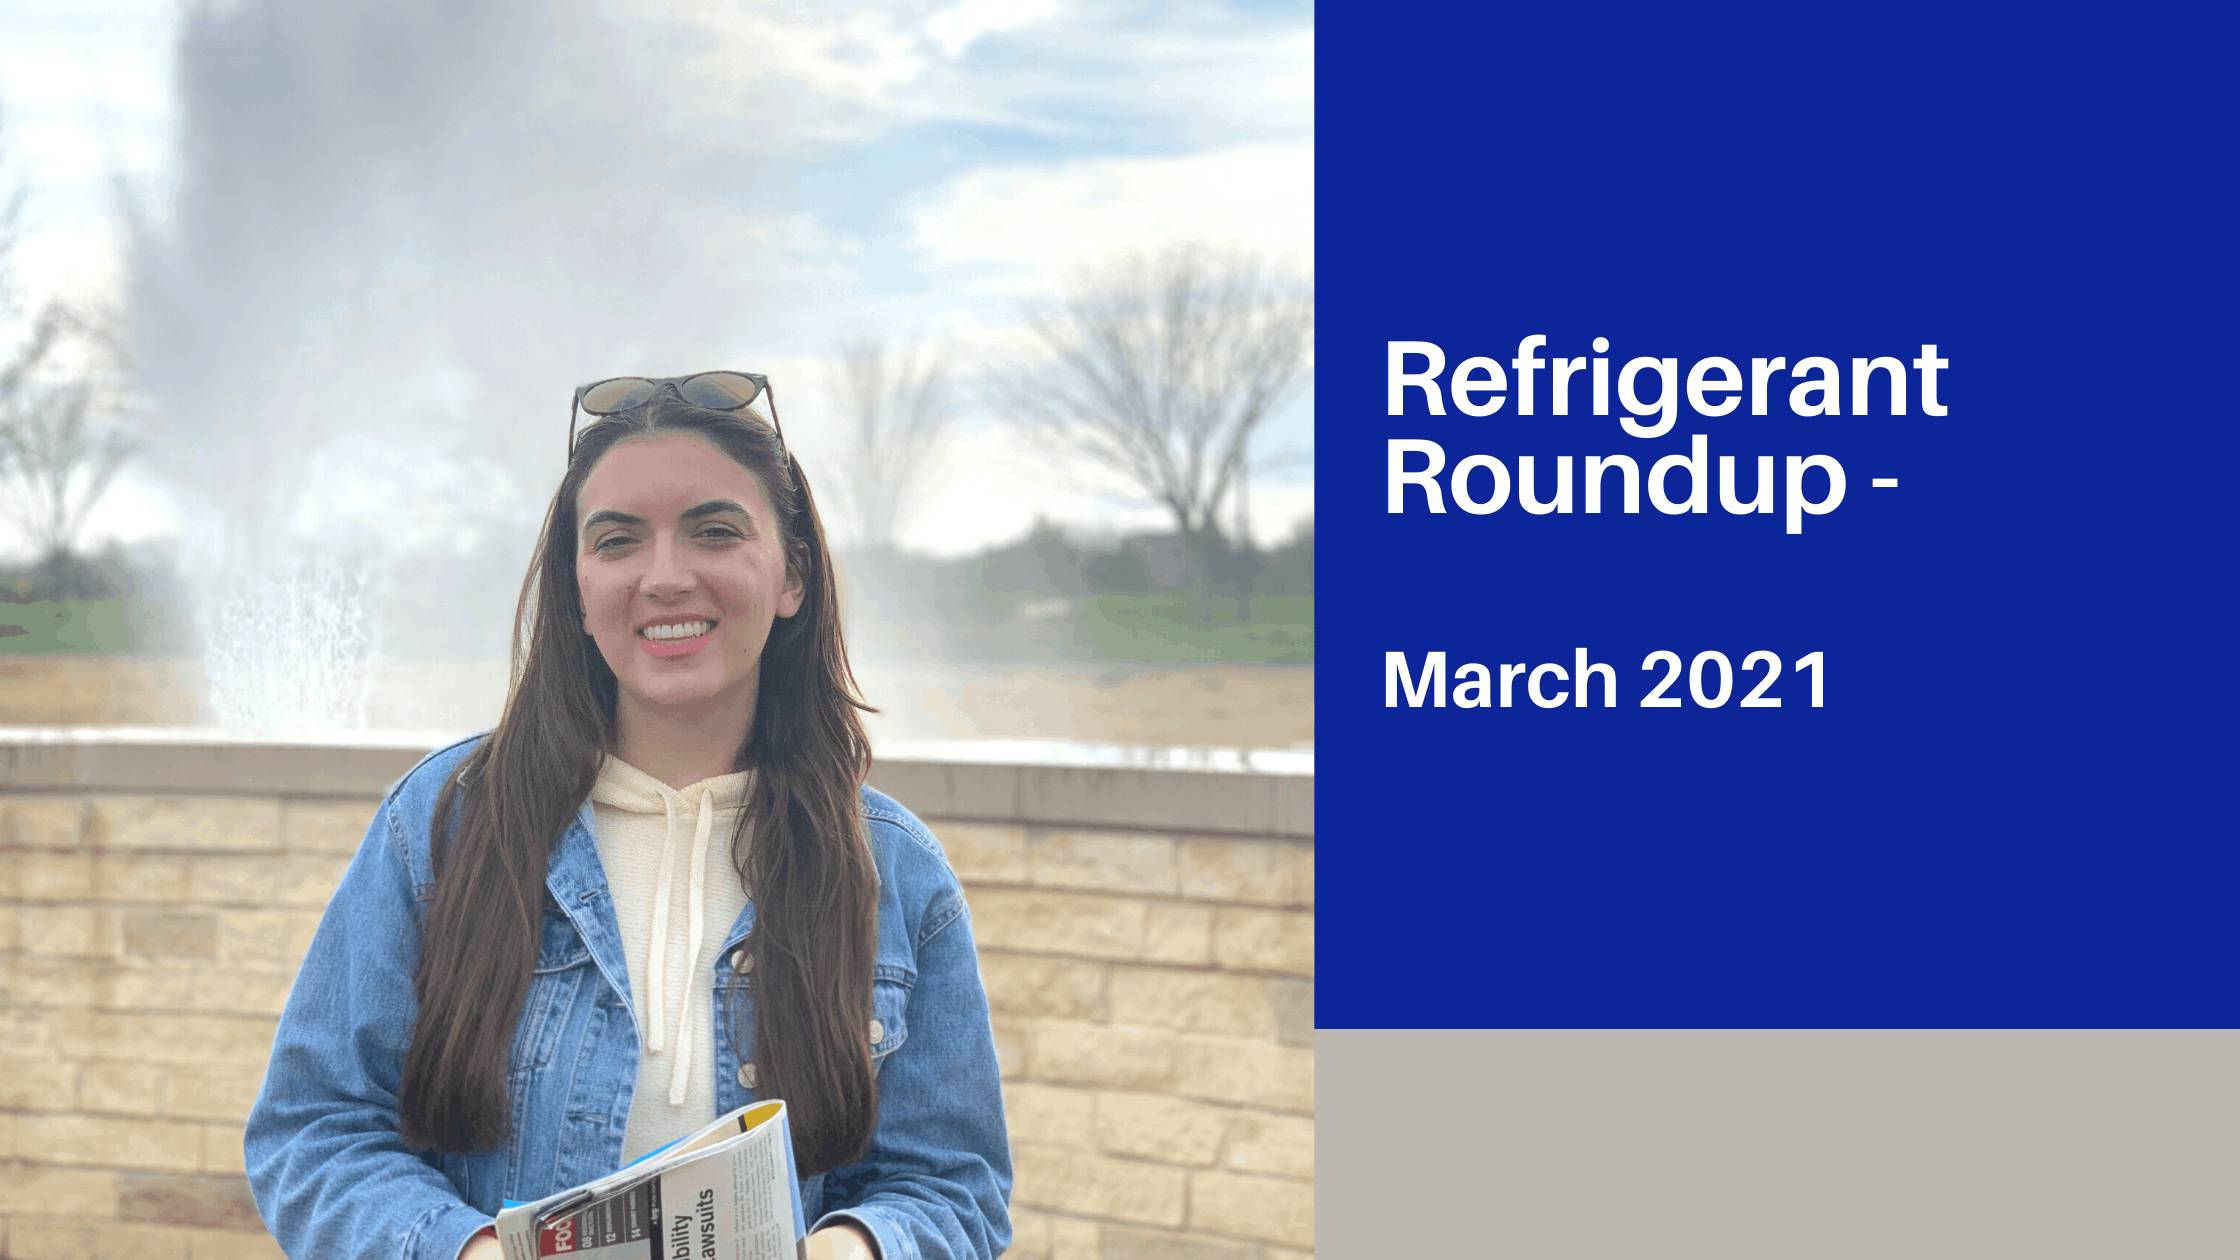 Refrigerant Roundup for March 2021